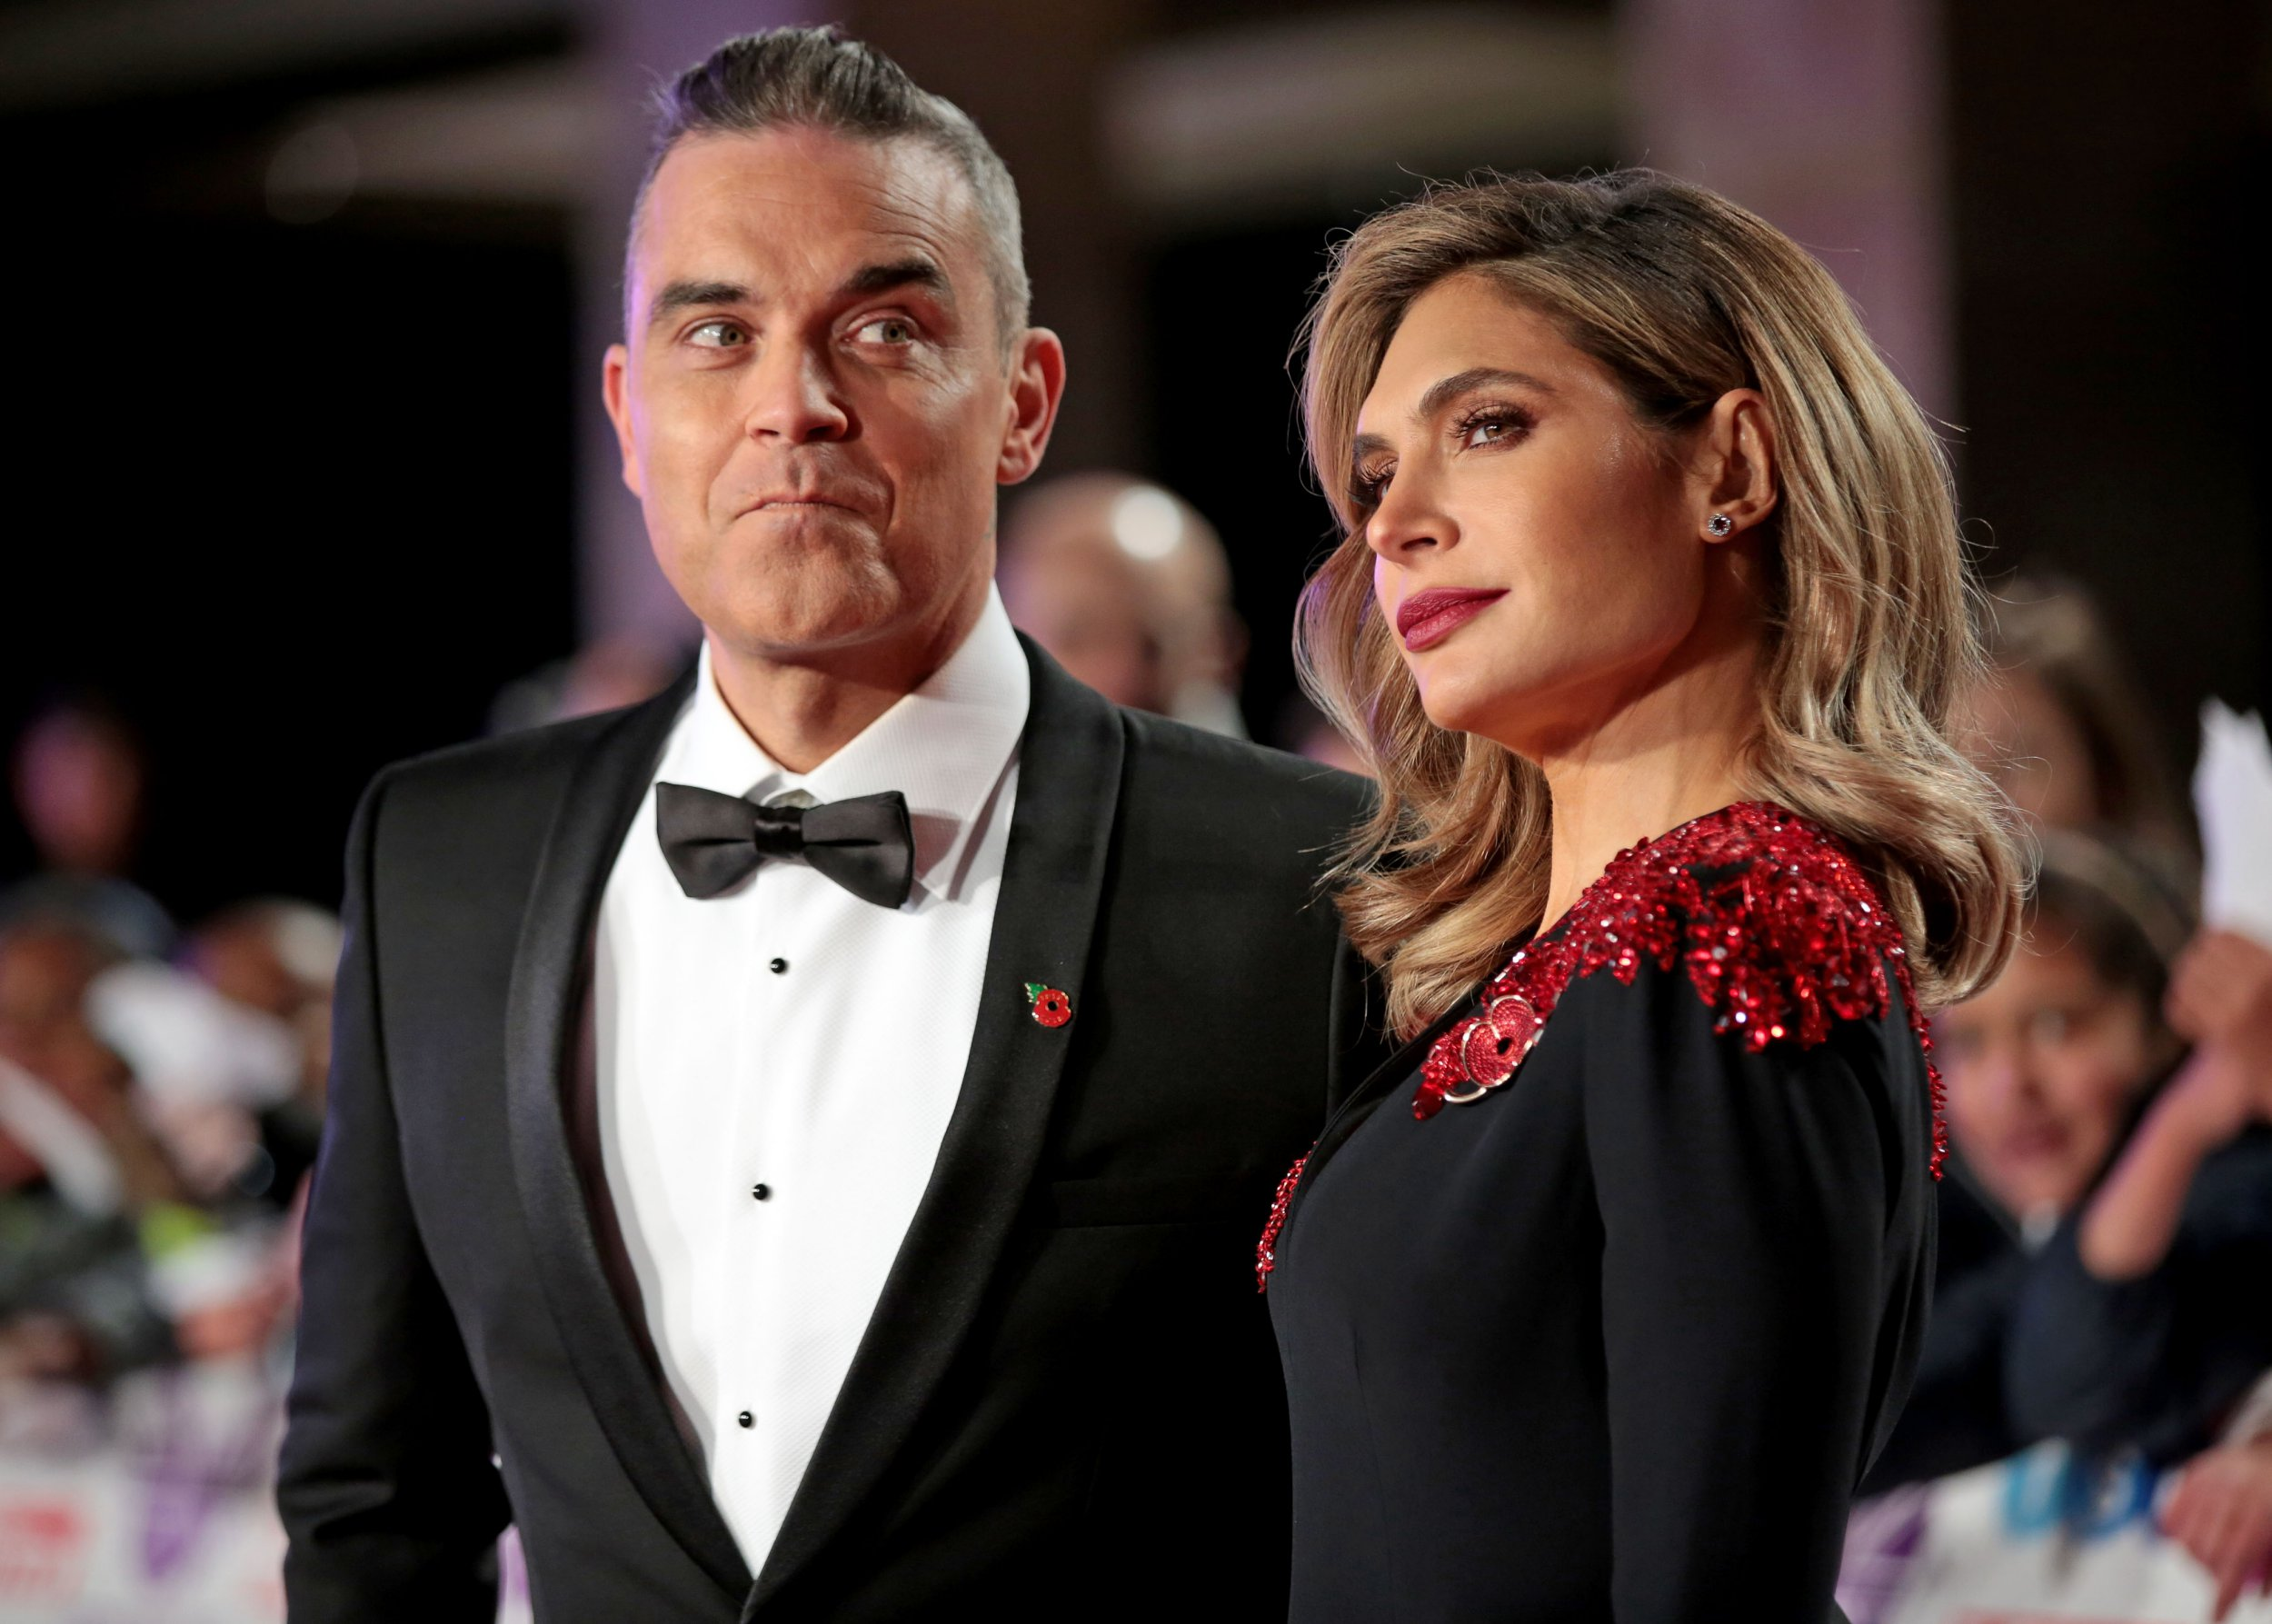 Mandatory Credit: Photo by James Shaw/REX/Shutterstock (9948383ae) Robbie Williams and Ayda Williams Pride of Britain Awards, Grosvenor House, London, UK - 29 Oct 2018